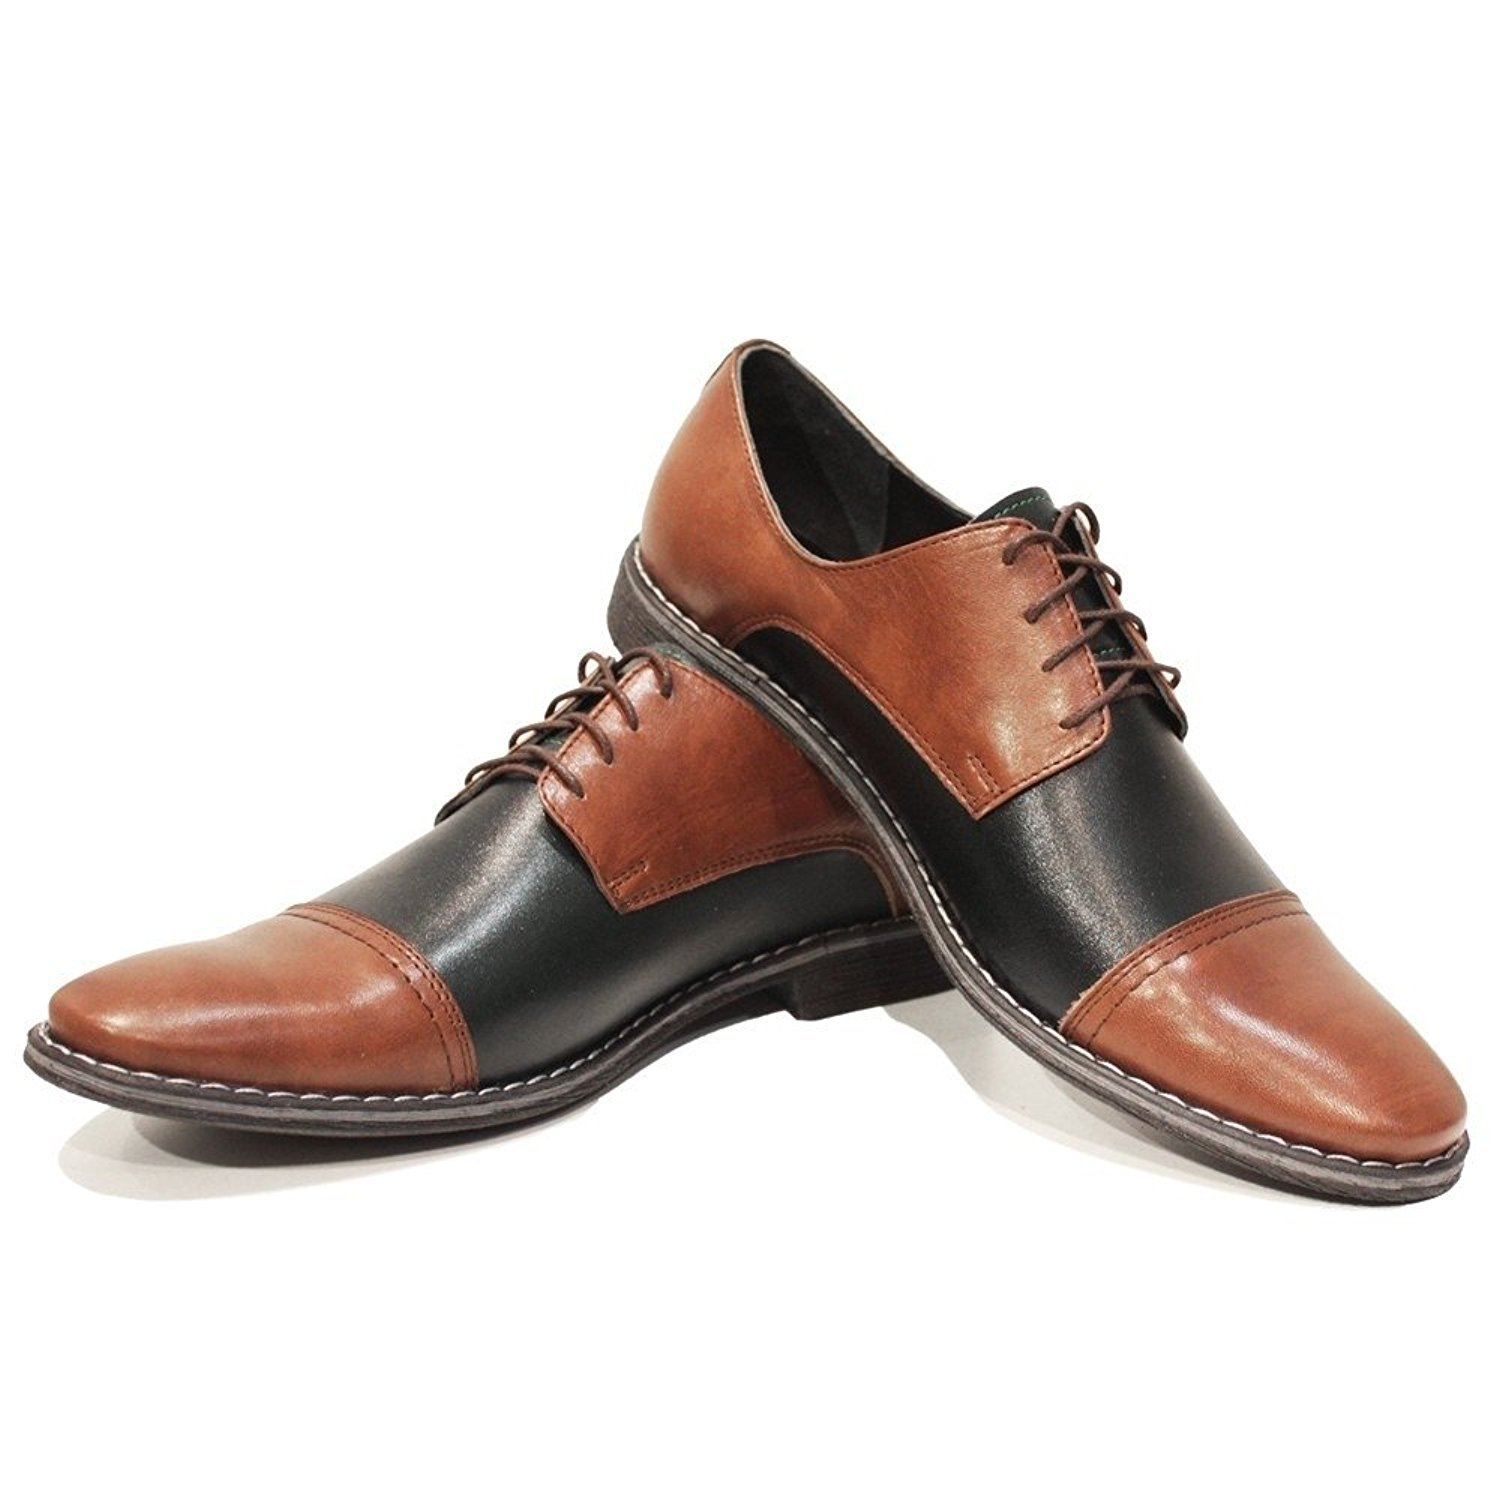 Modello Kano - Handmade Italian Mens Brown Oxfords Dress Shoes - Cowhide Smooth Leather - Lace-up